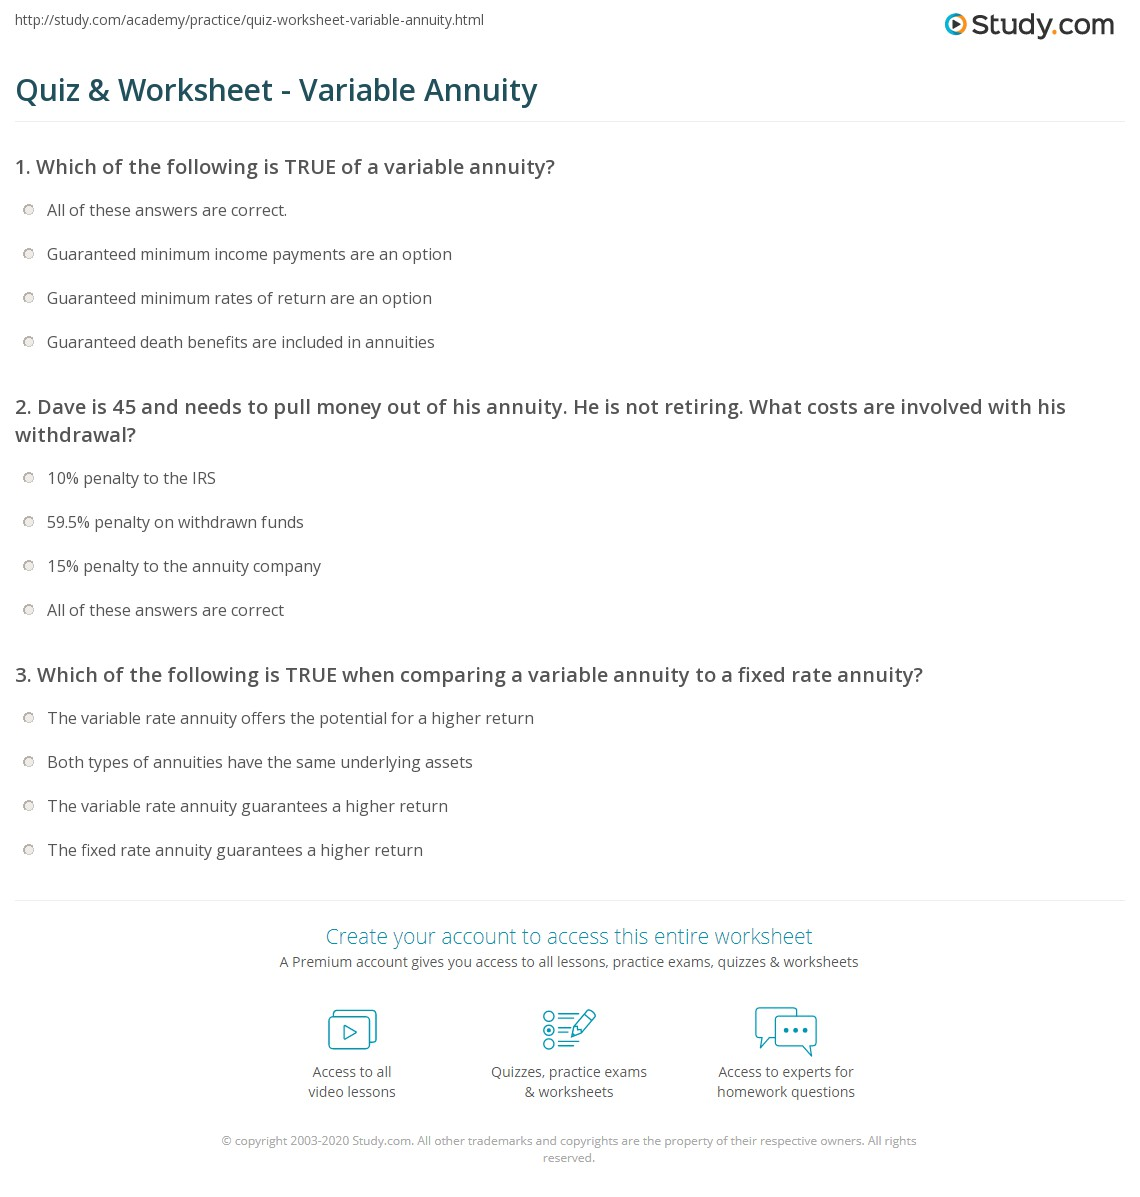 quiz & worksheet - variable annuity | study